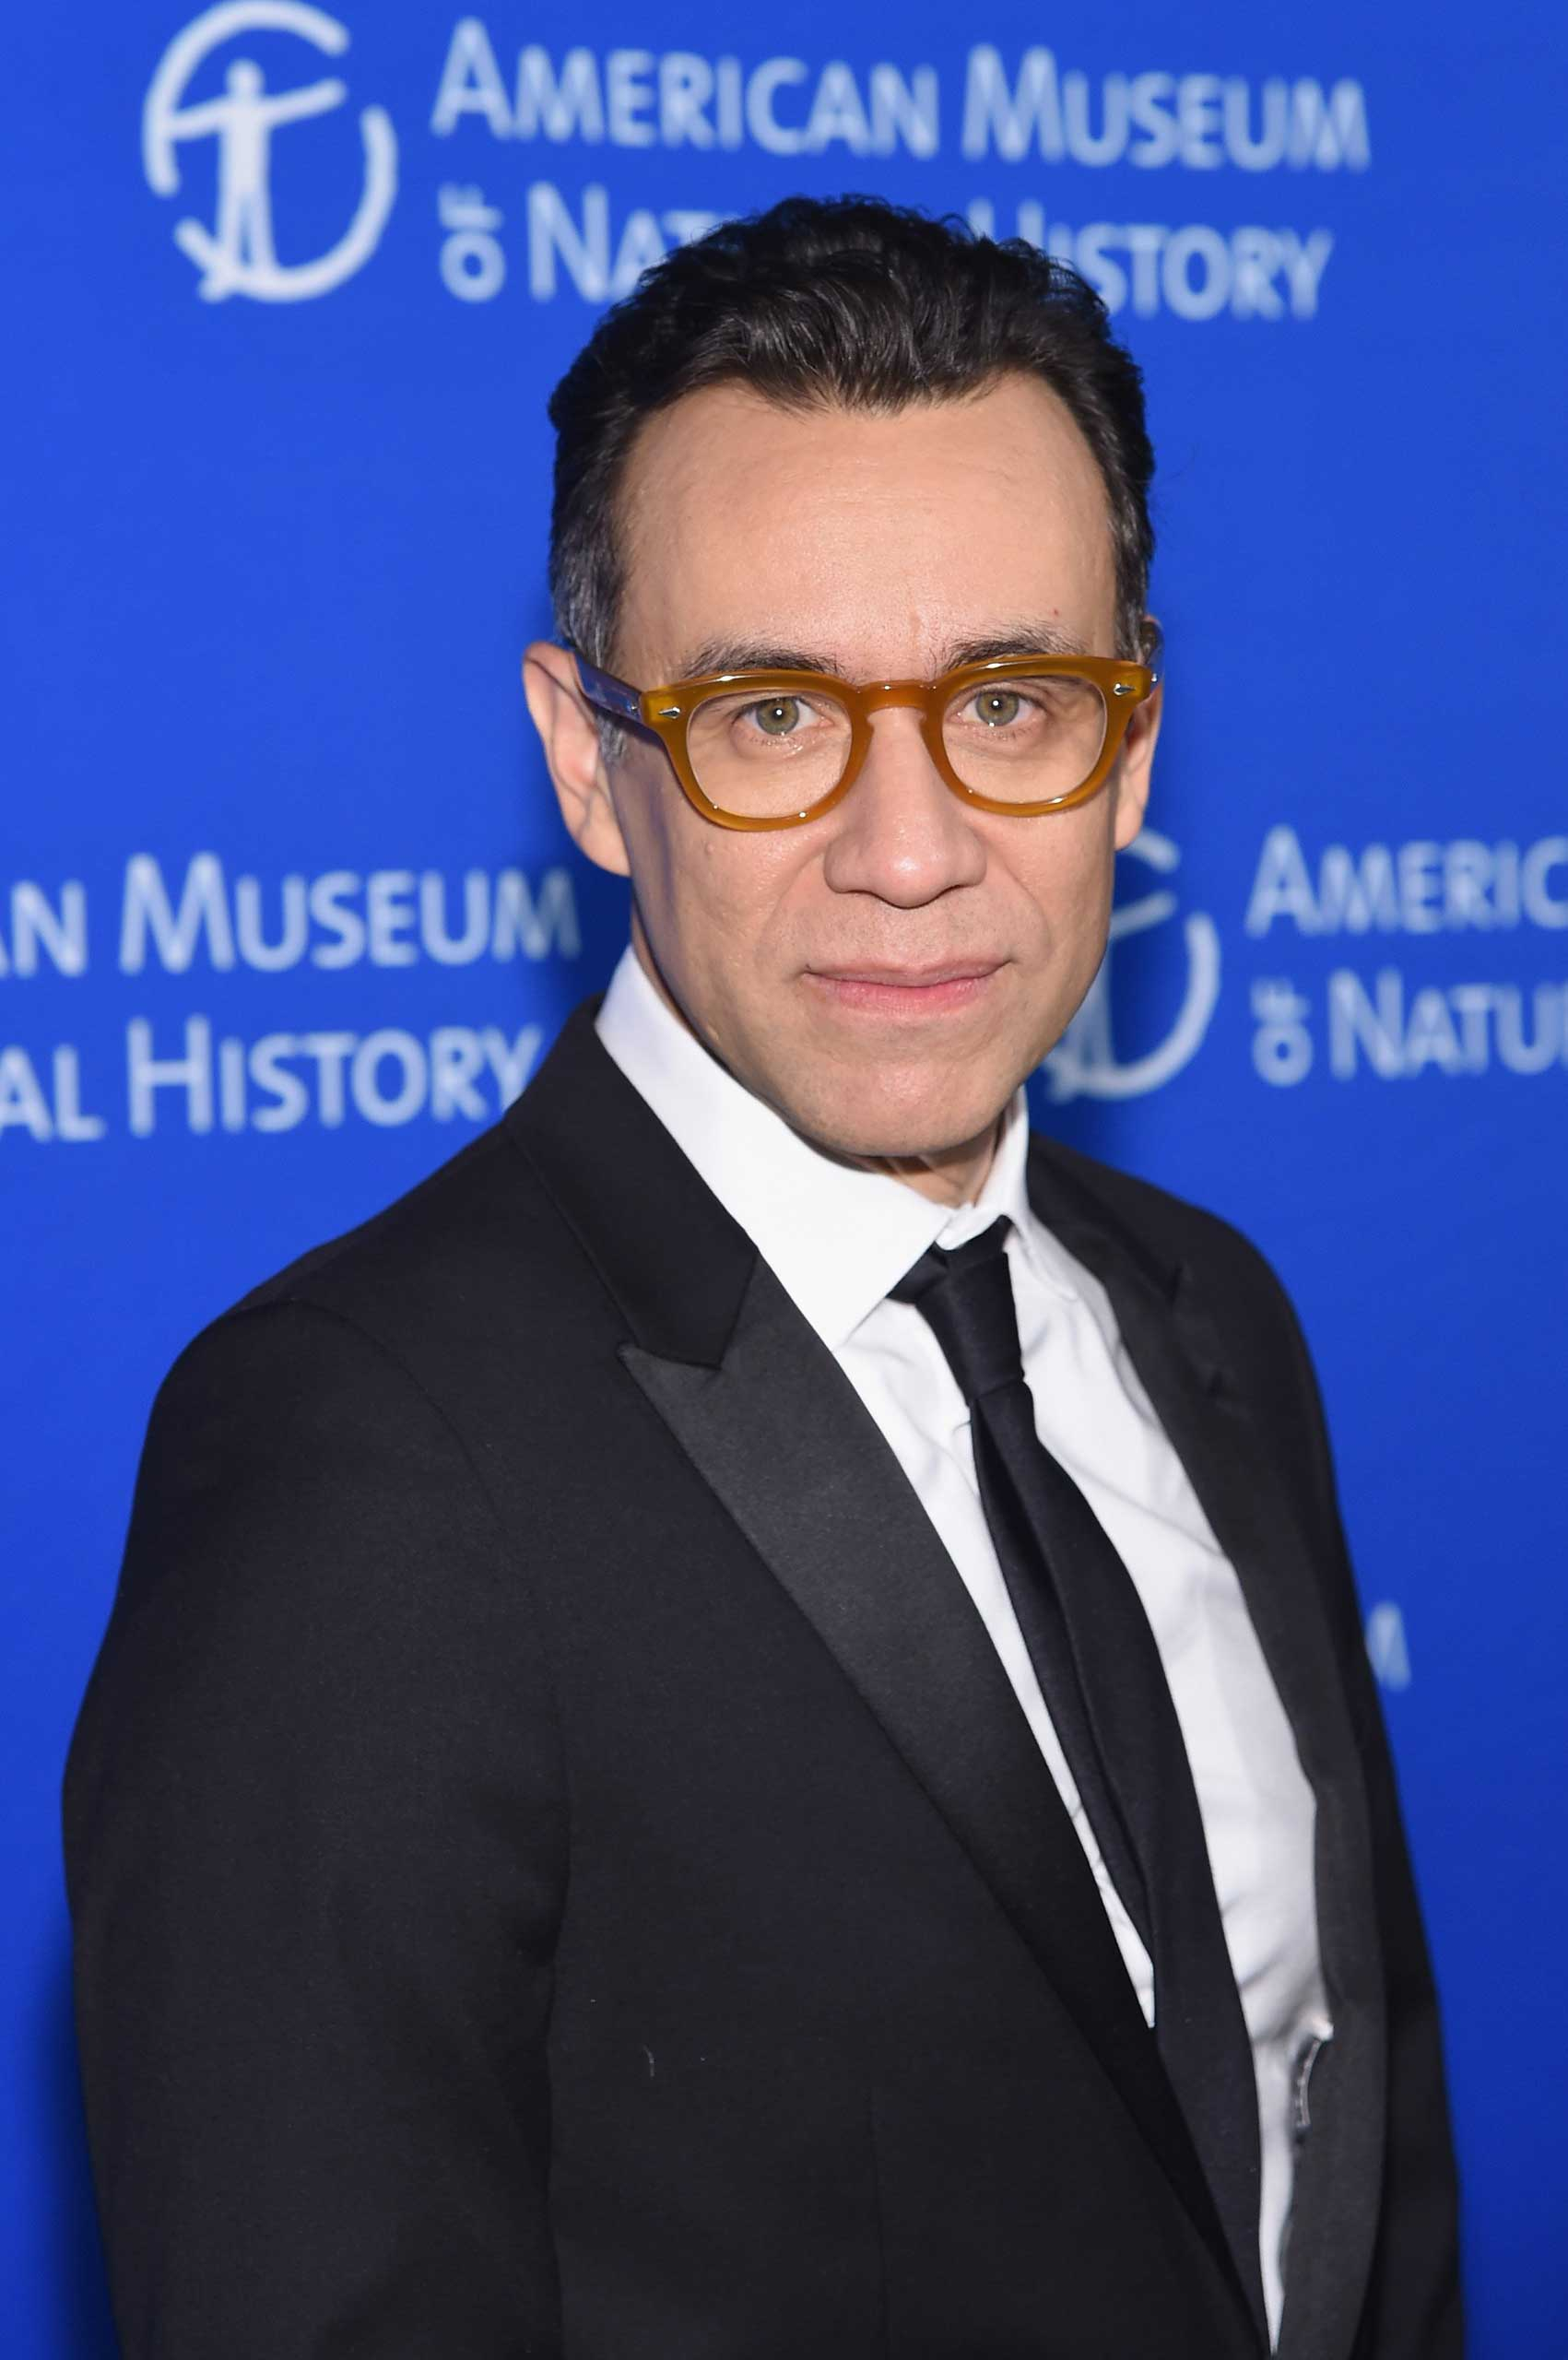 Fred Armisen attends the 2014 Museum Gala at American Museum of Natural History in New York City on Nov. 20, 2014 in New York City.